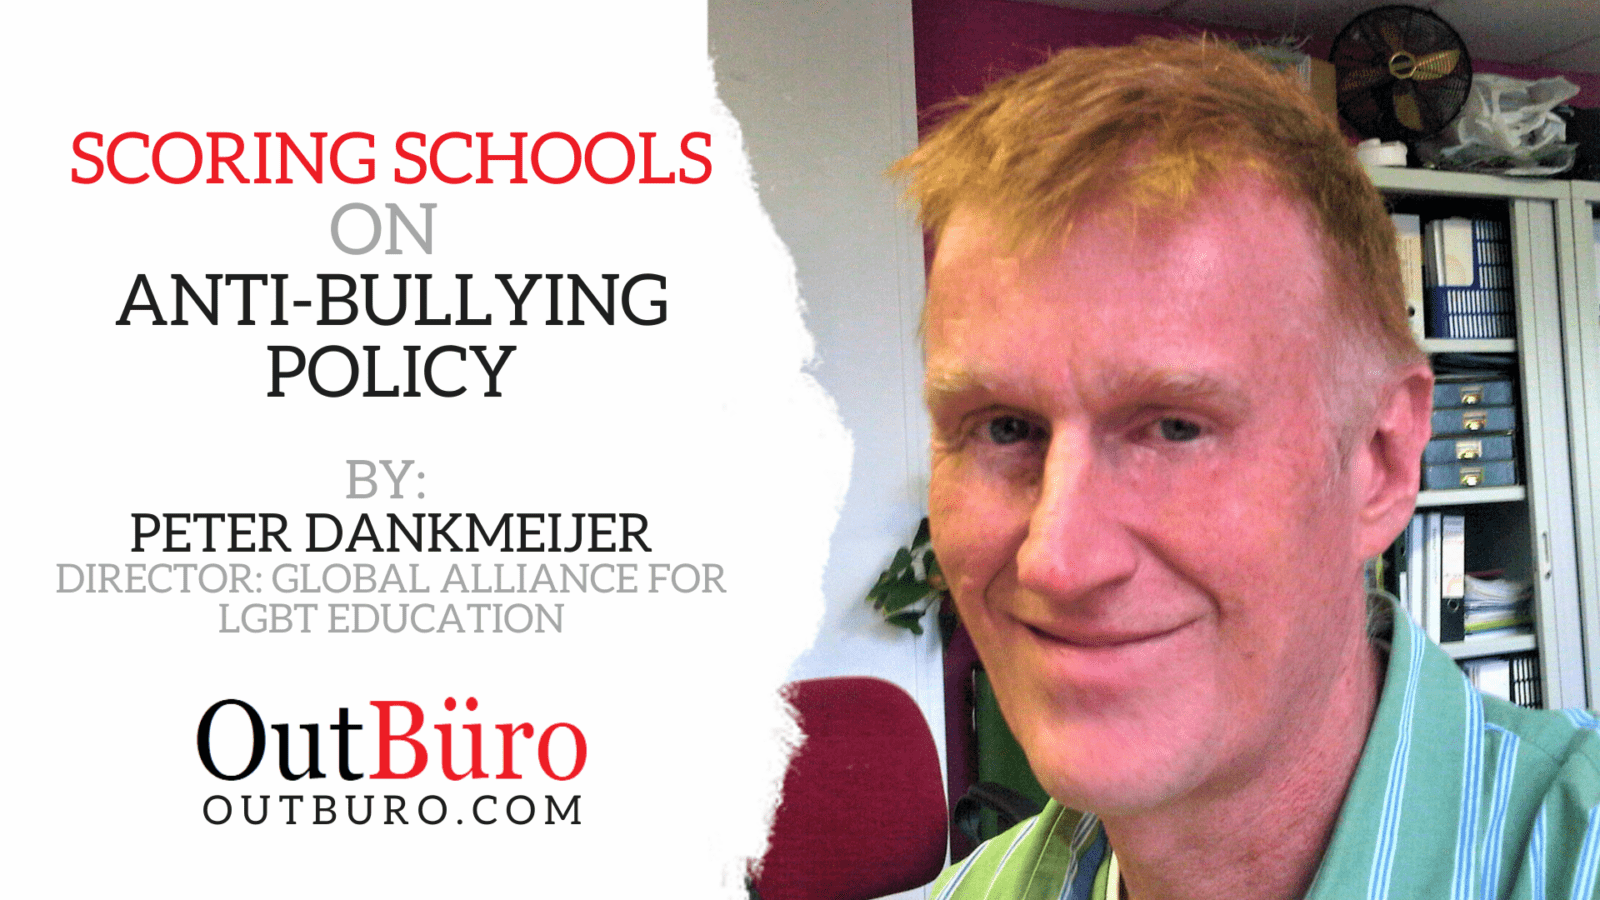 Scoring Schools on Anti Bullying Policy - GALE Global Alliance LGBT Education - Peter Dankmeijer - Scoring Shcools Anti Bullying Policies Safe Environment Students Gay Lesbian OutBuro